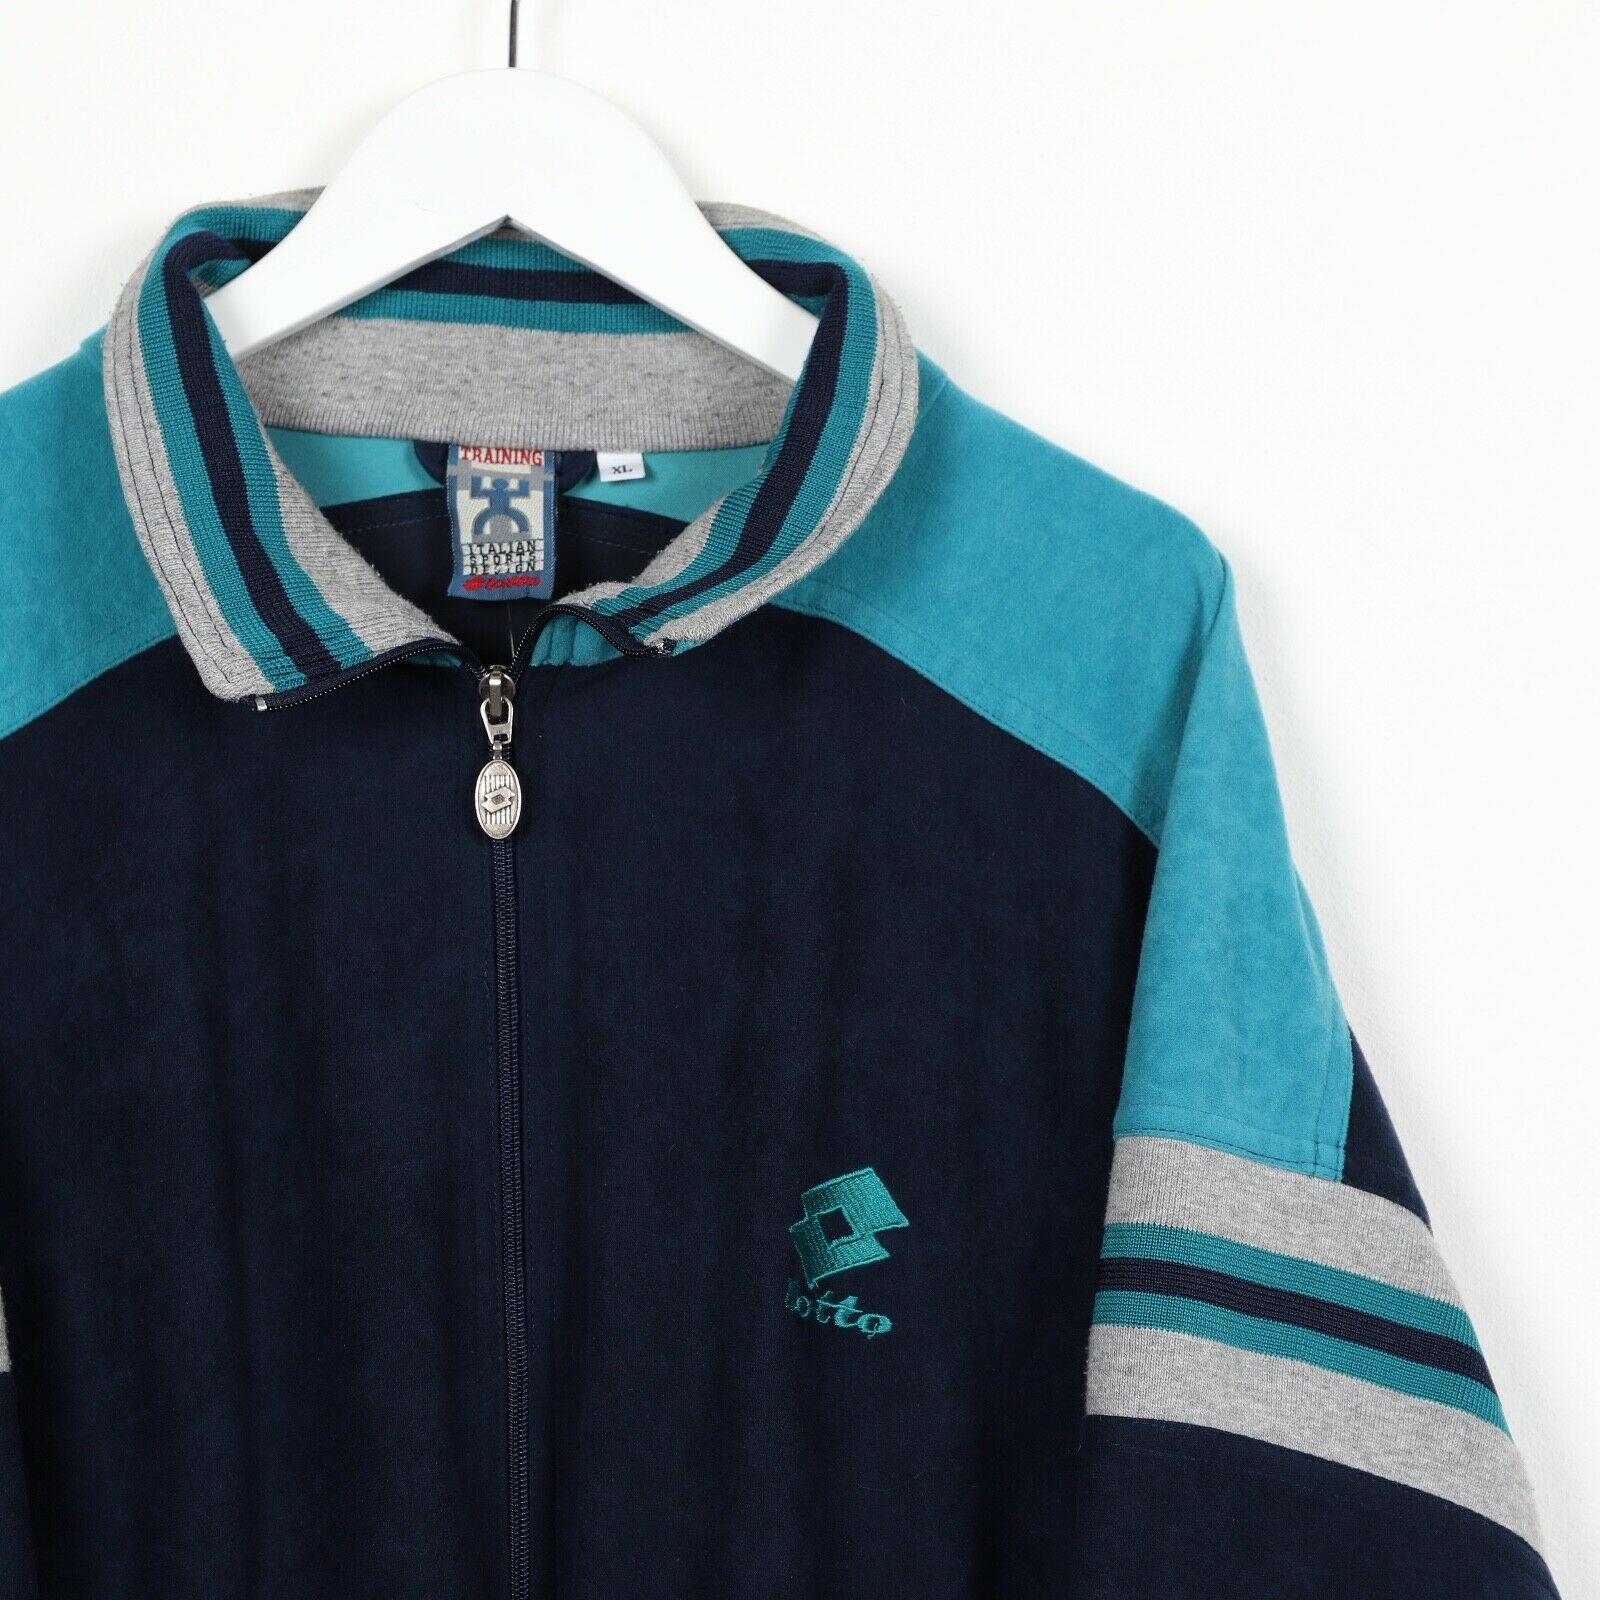 Vintage LOTTO Small Logo Track Top Jacket Navy Blue Teal XL